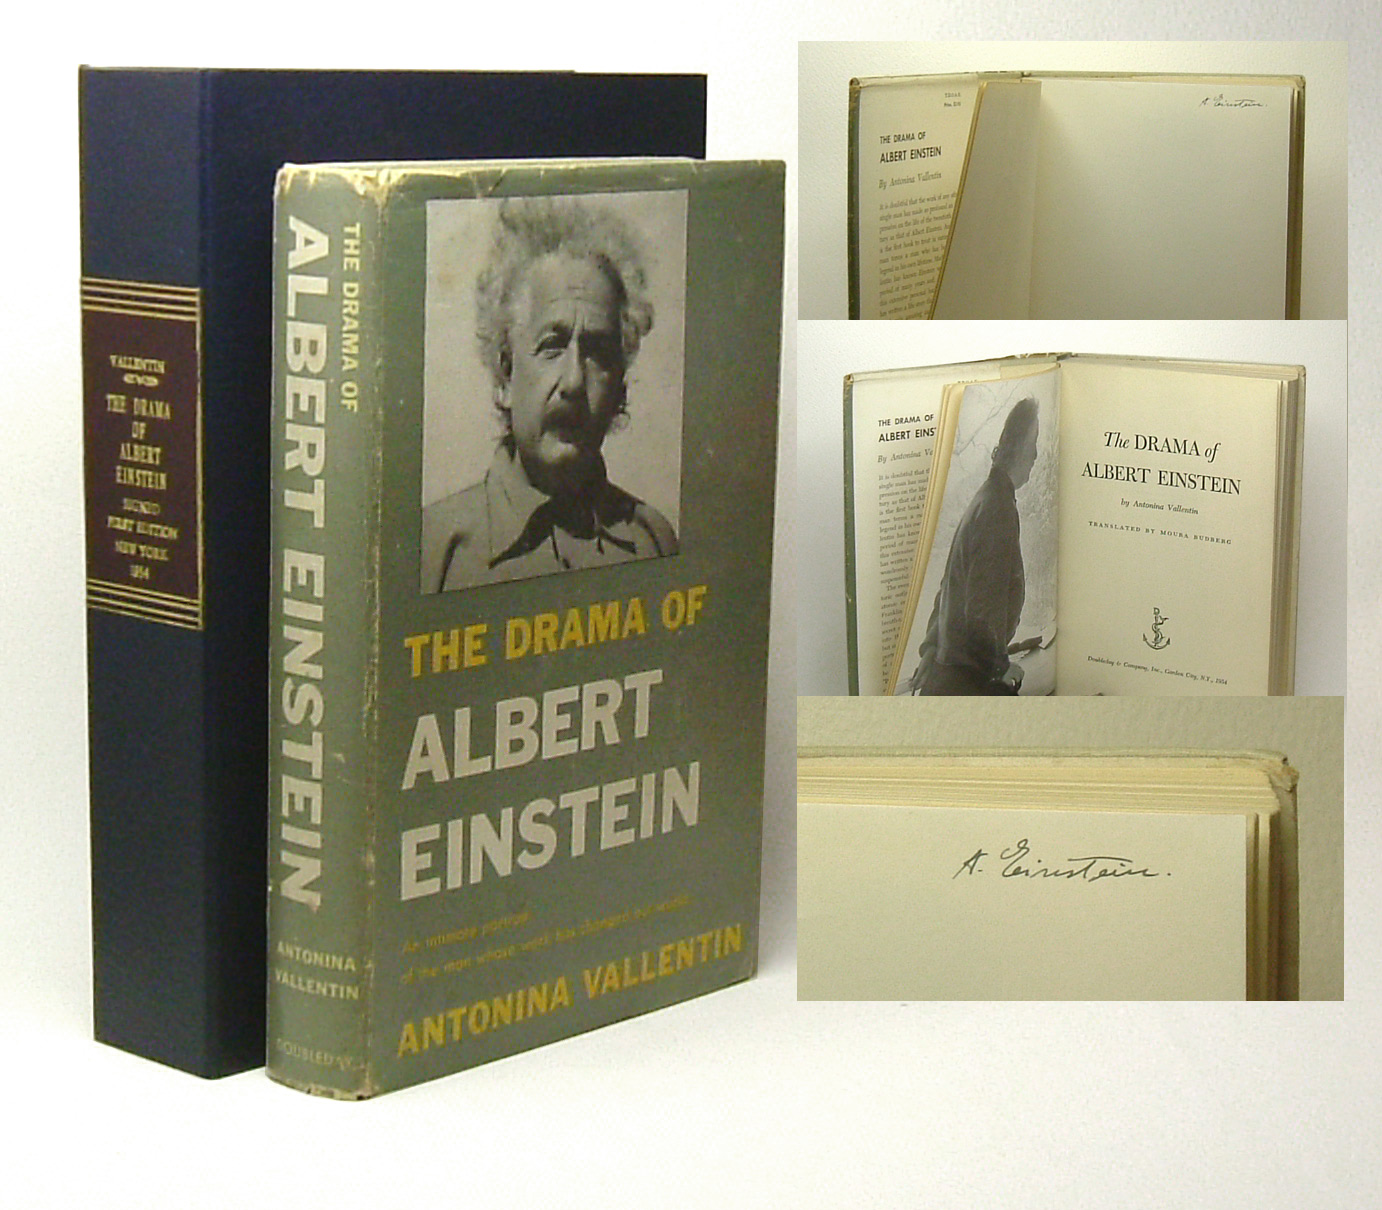 tbcl the book collector s library albert einstein relativity a einstein at the top of the verso of the frontispiece a near fine copy in like dustwrapper showing light use uncommon signed